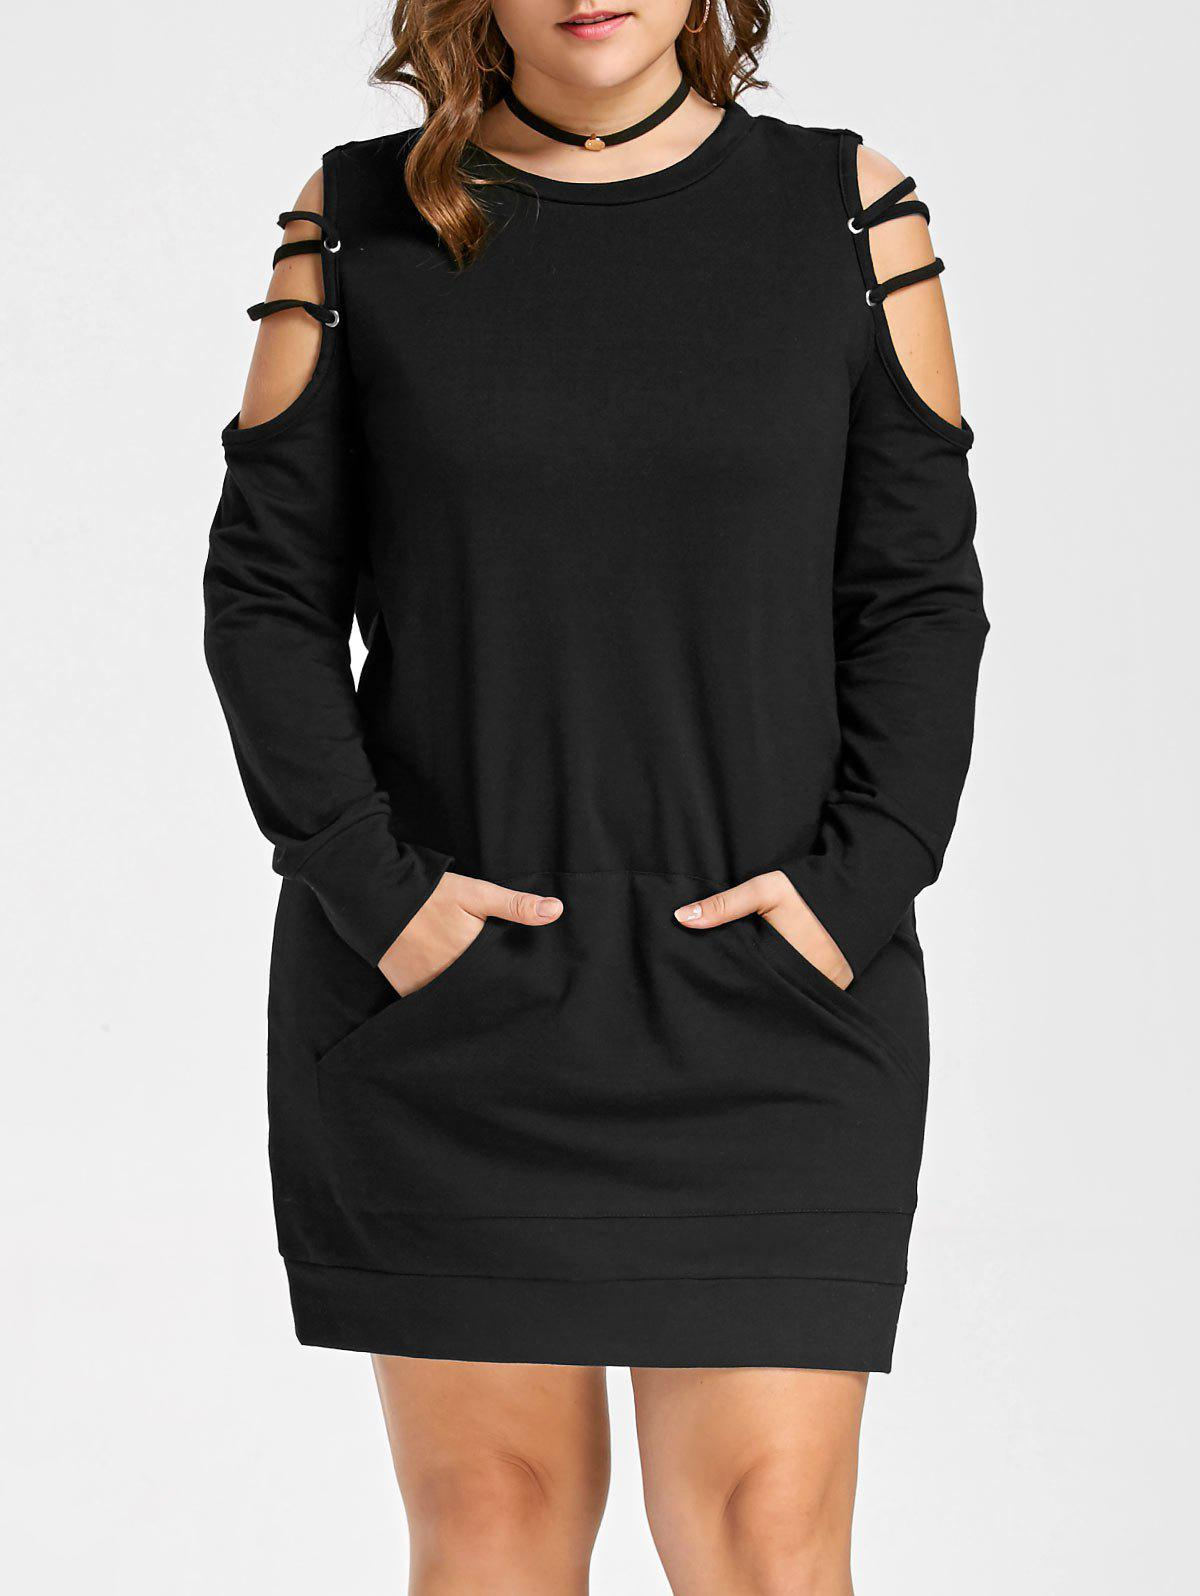 Open Shoulder Plus Size Ladder Cut Out DressWOMEN<br><br>Size: 3XL; Color: BLACK; Style: Casual; Material: Polyester,Spandex; Silhouette: Sheath; Dresses Length: Mini; Neckline: Round Collar; Sleeve Length: Long Sleeves; Pattern Type: Solid; With Belt: No; Season: Fall,Spring; Weight: 0.4900kg; Package Contents: 1 x Dress;